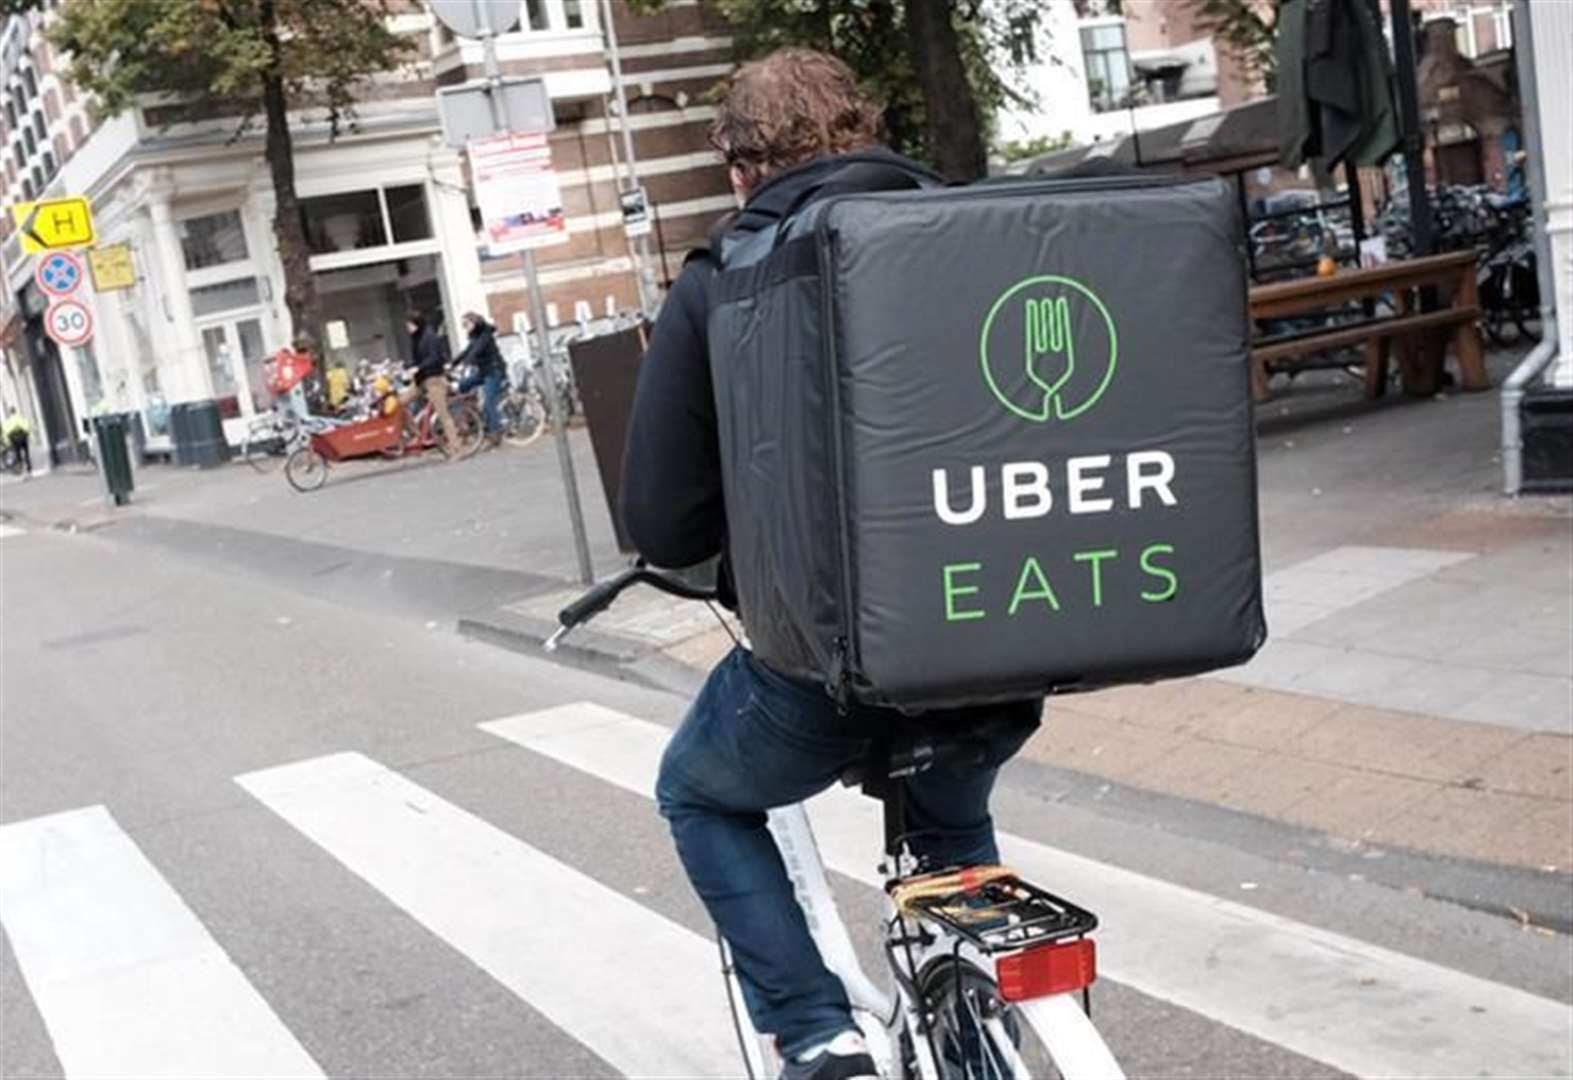 Uber Eats to expand its service in Kent